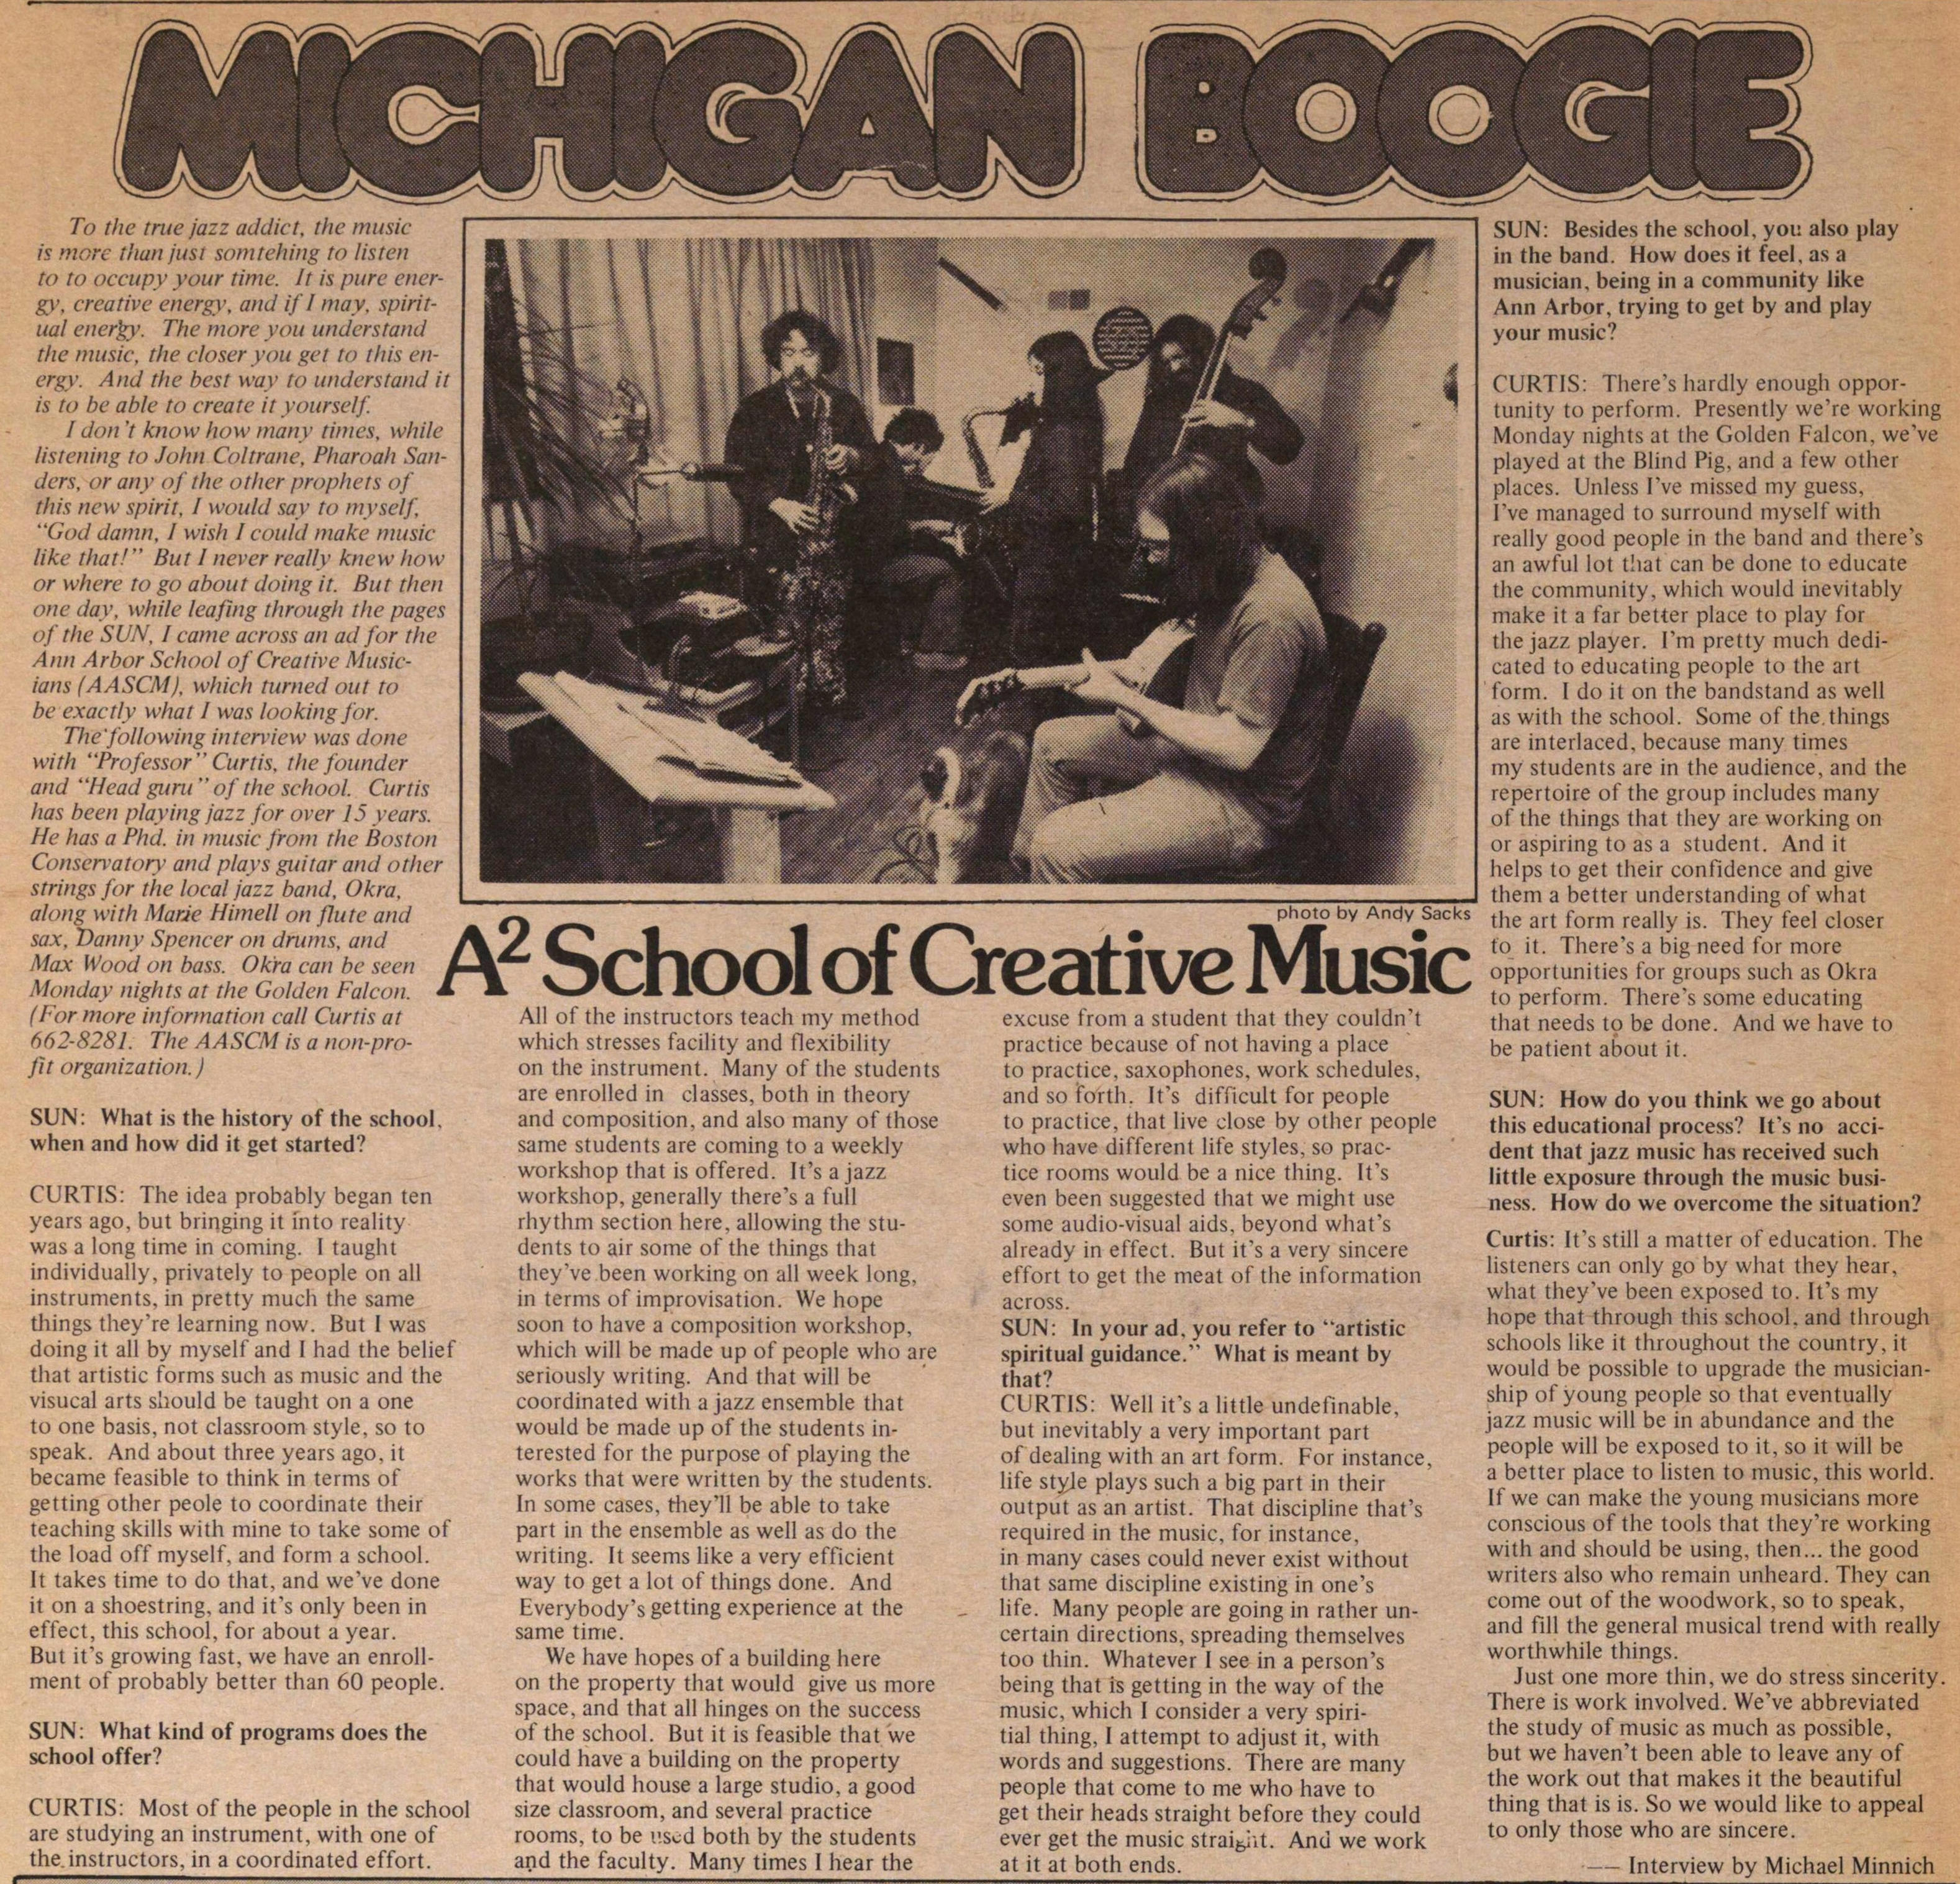 Michigan Boogie A2 School Of Creative Music image